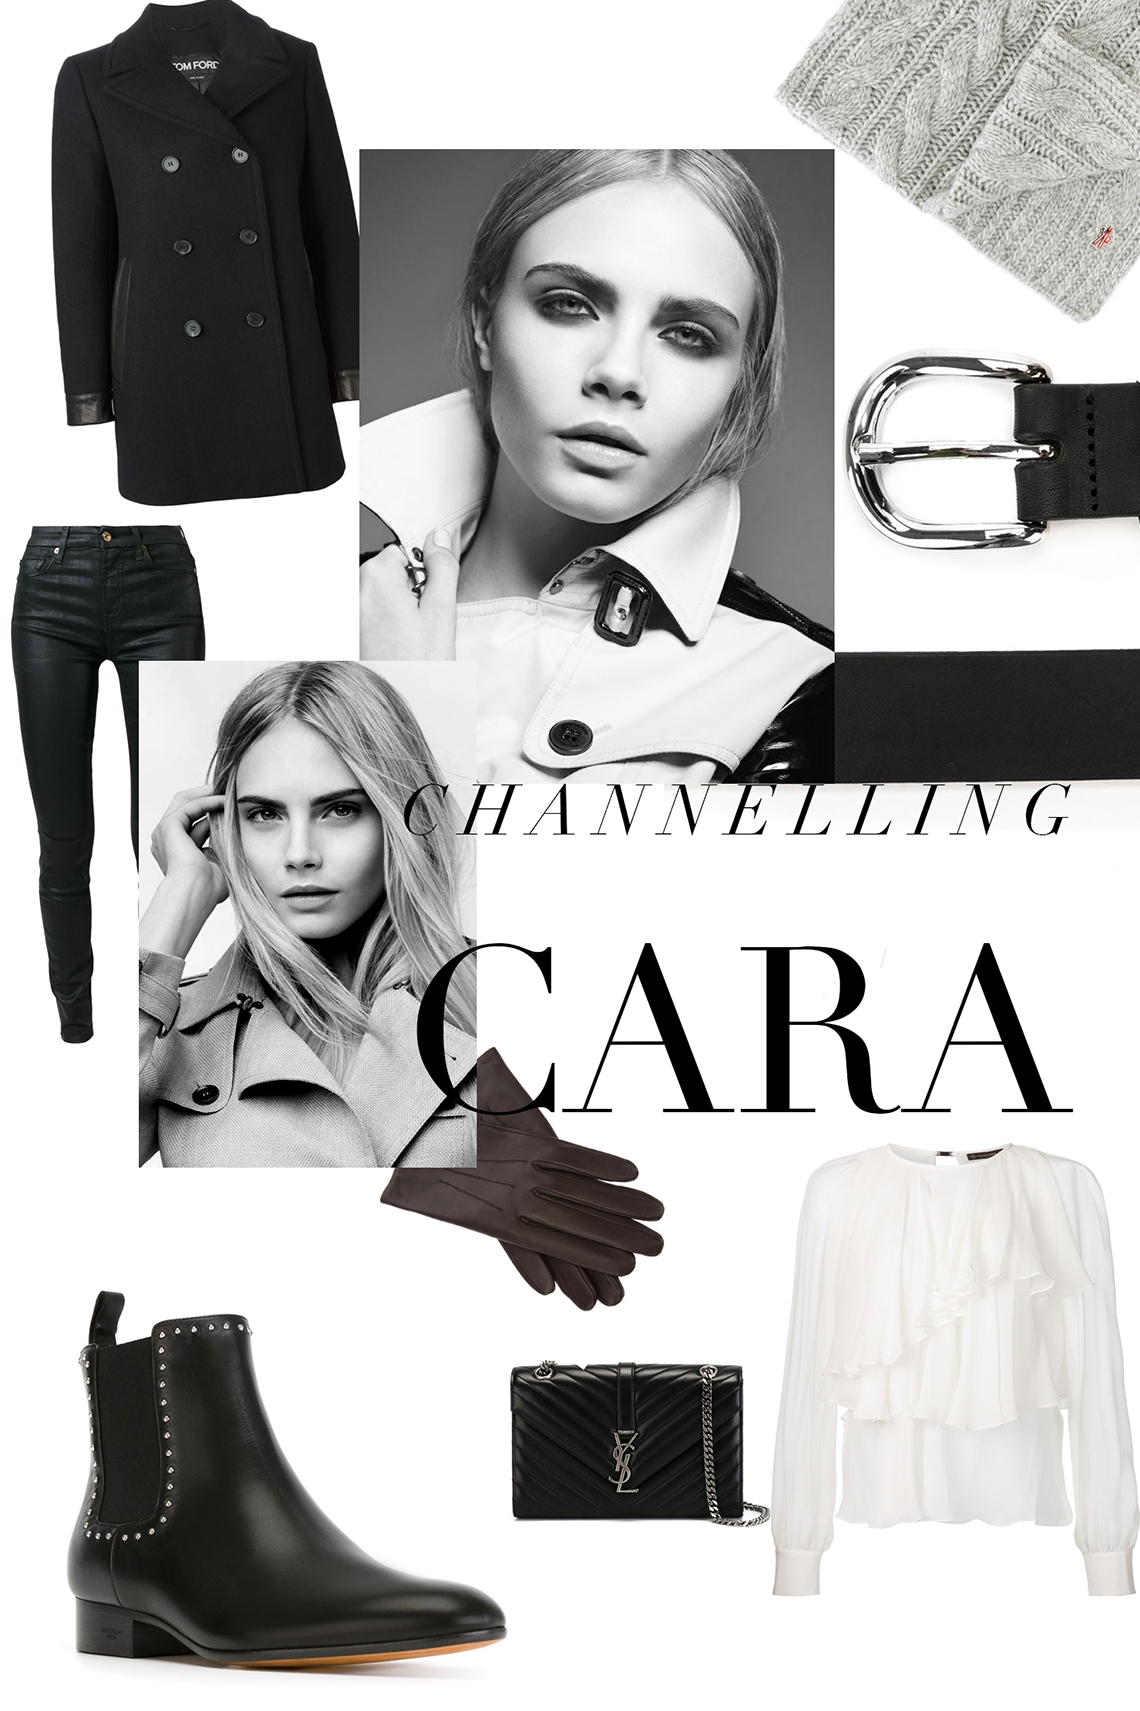 chanelling cara